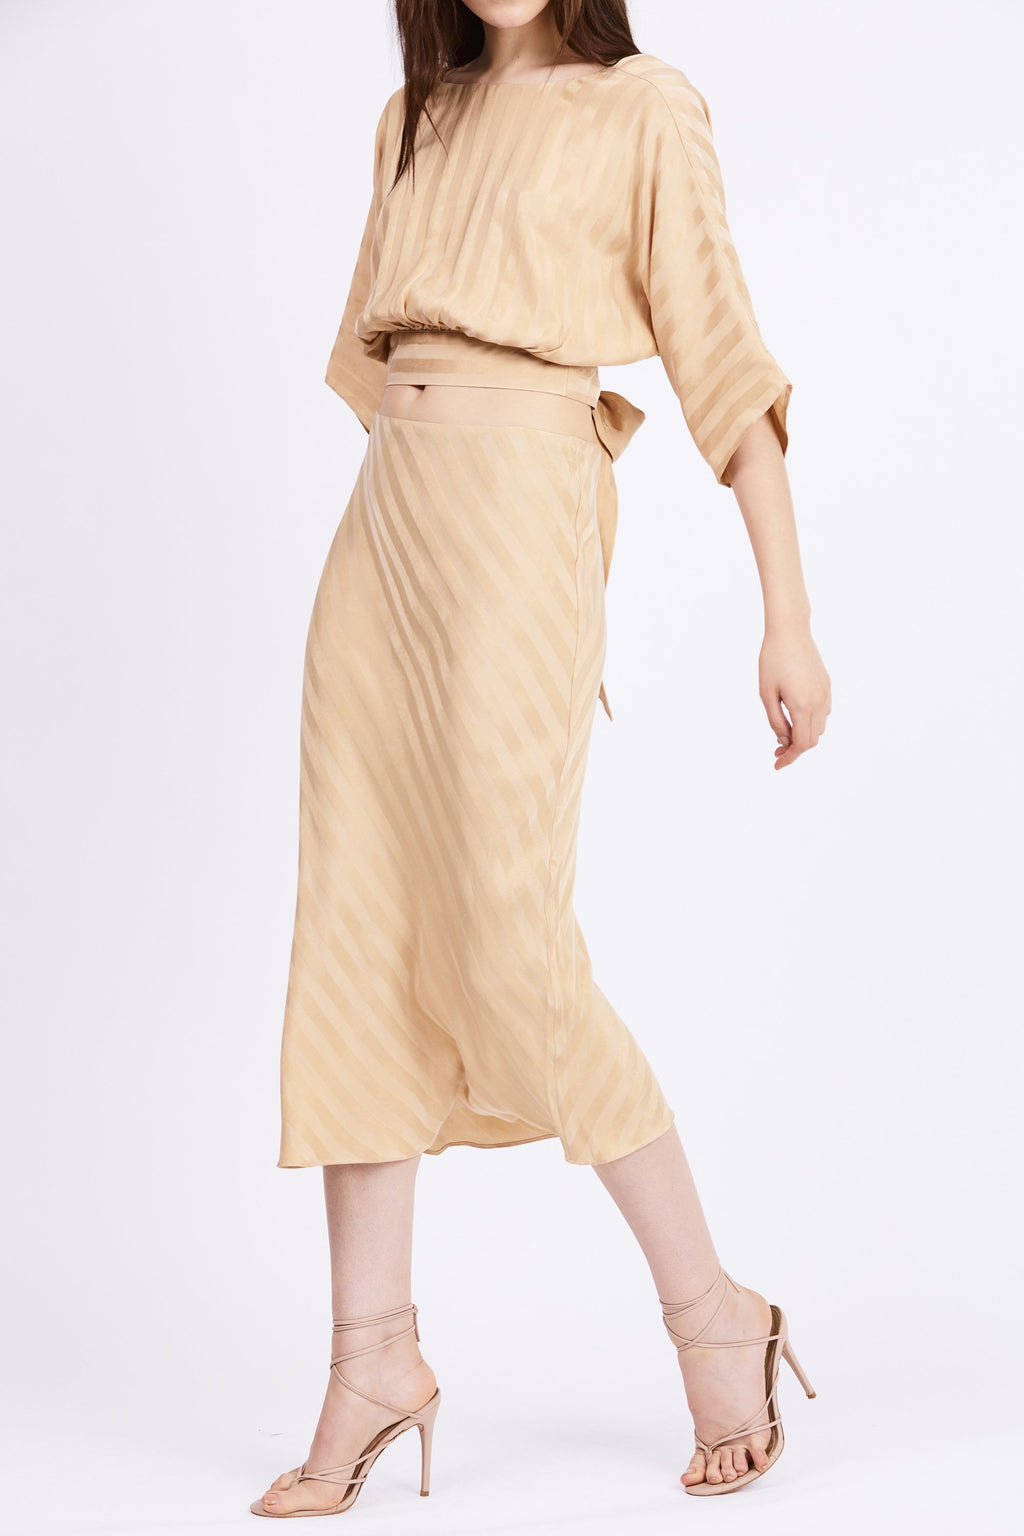 Third Form Bias Midi Slip Skirt - Tan